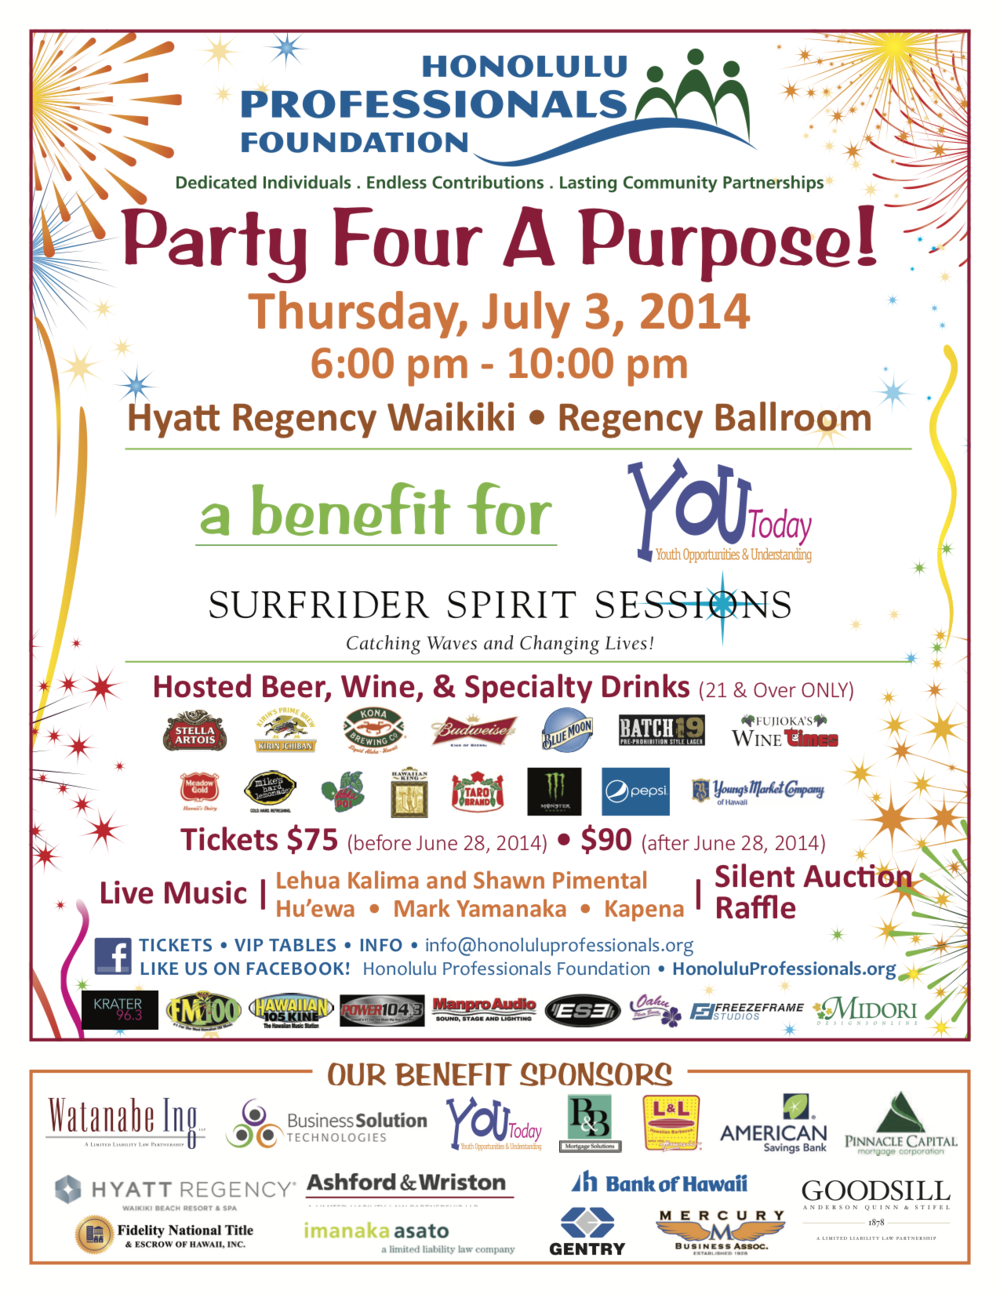 HPF_PartyFourAPurpose_2014_flyer.png